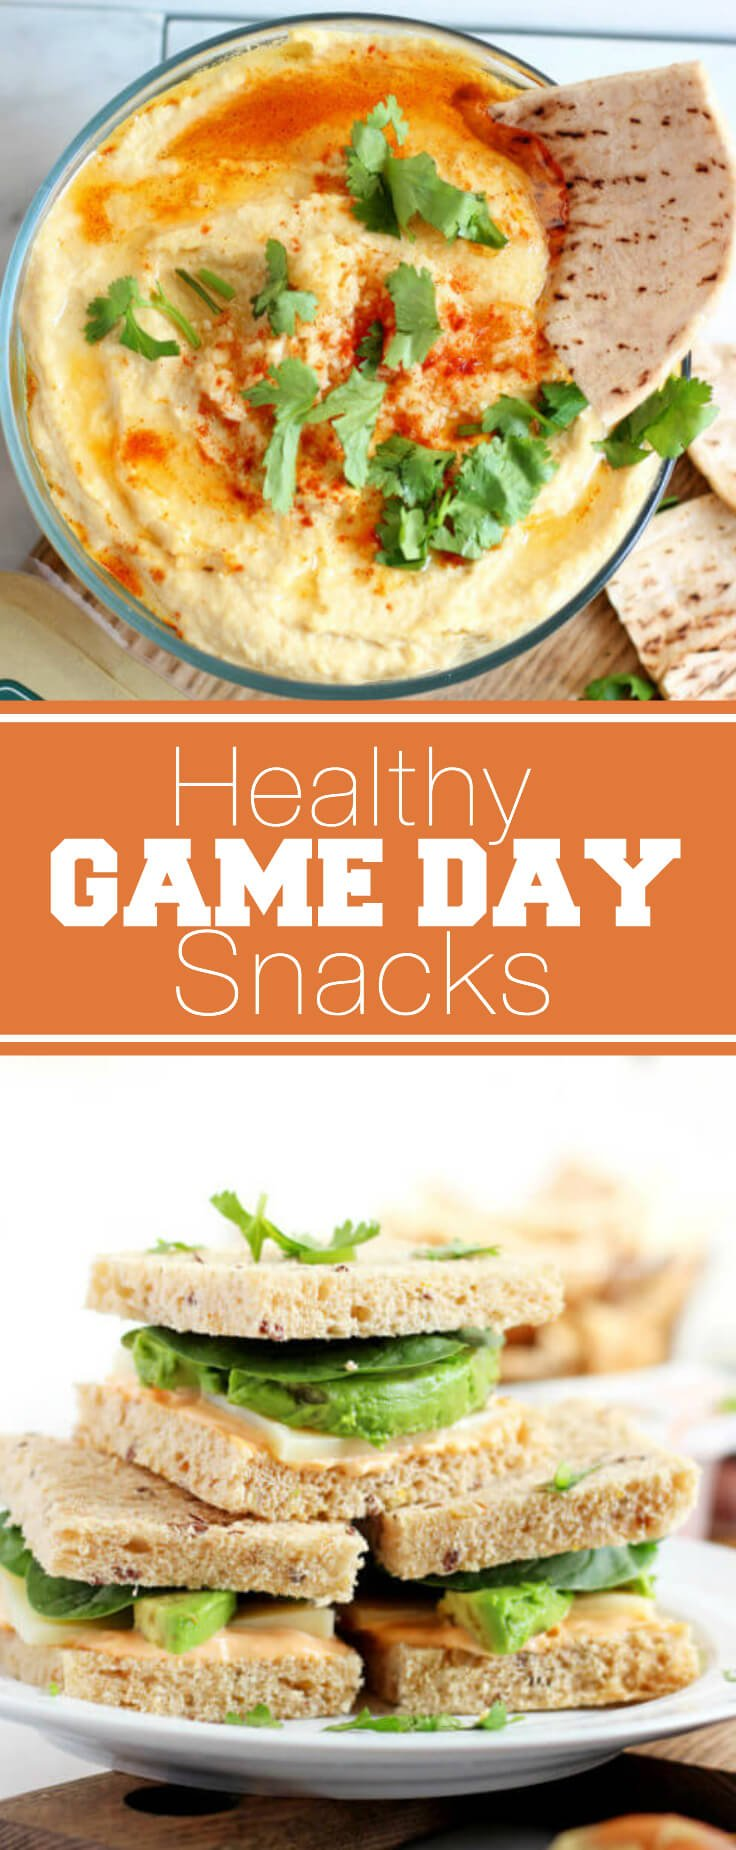 Healthy Game Day Snacks, just in time for the football season!!